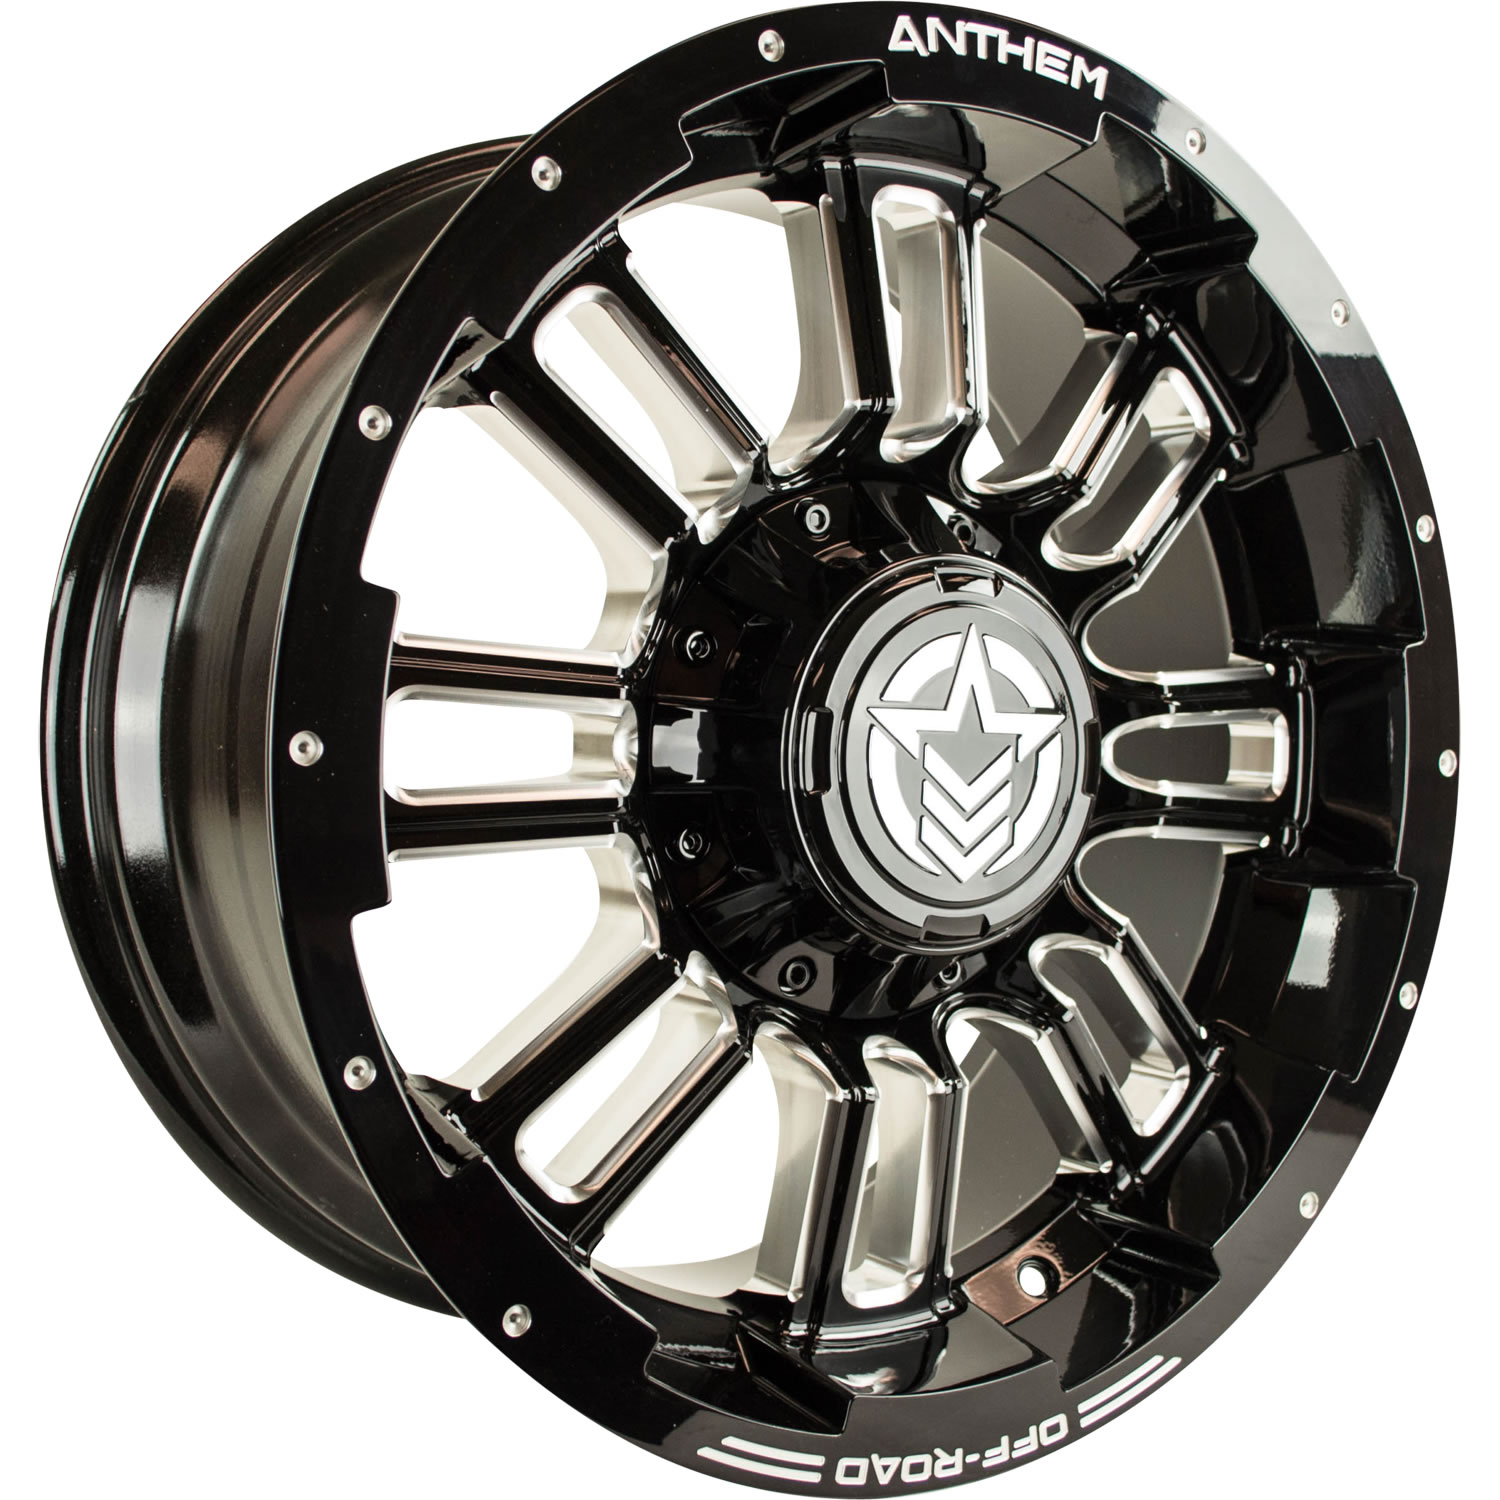 Anthem Enforcer 20x9 +18mm | A721209082057